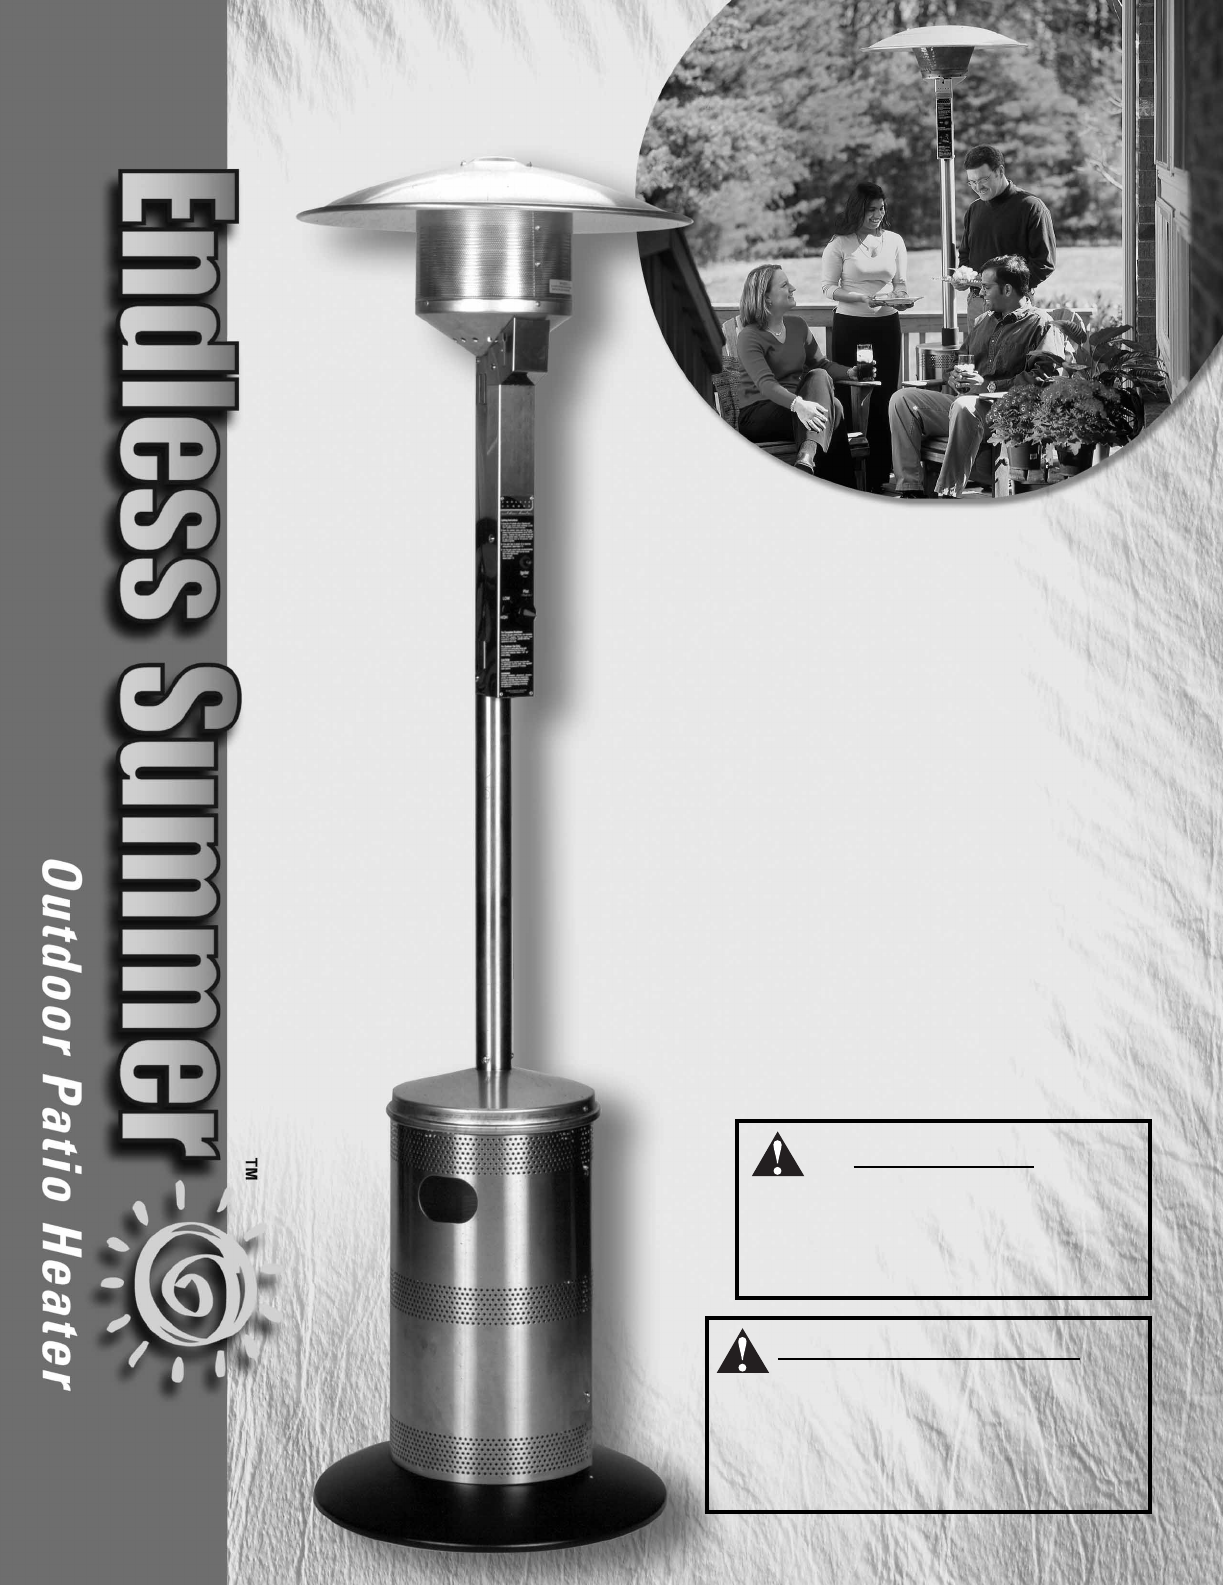 Blue Rhino Endless Summer Patio Heater Manual Icamblog